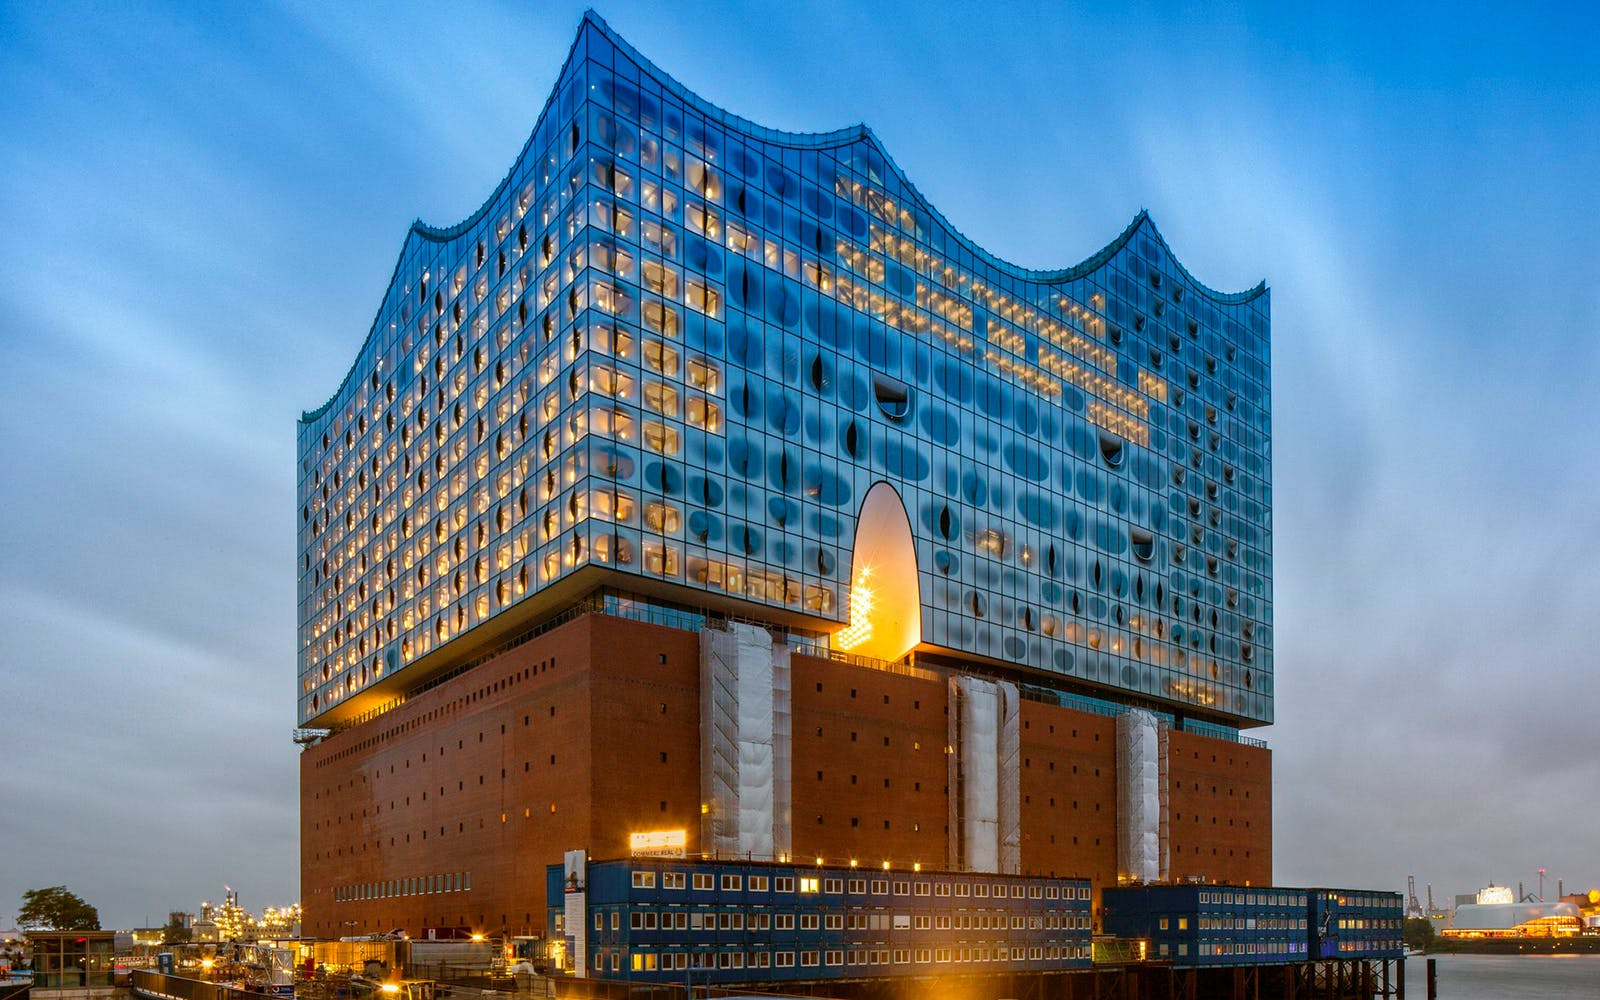 Skip the Line - Guided Tour of Elbphilharmonie